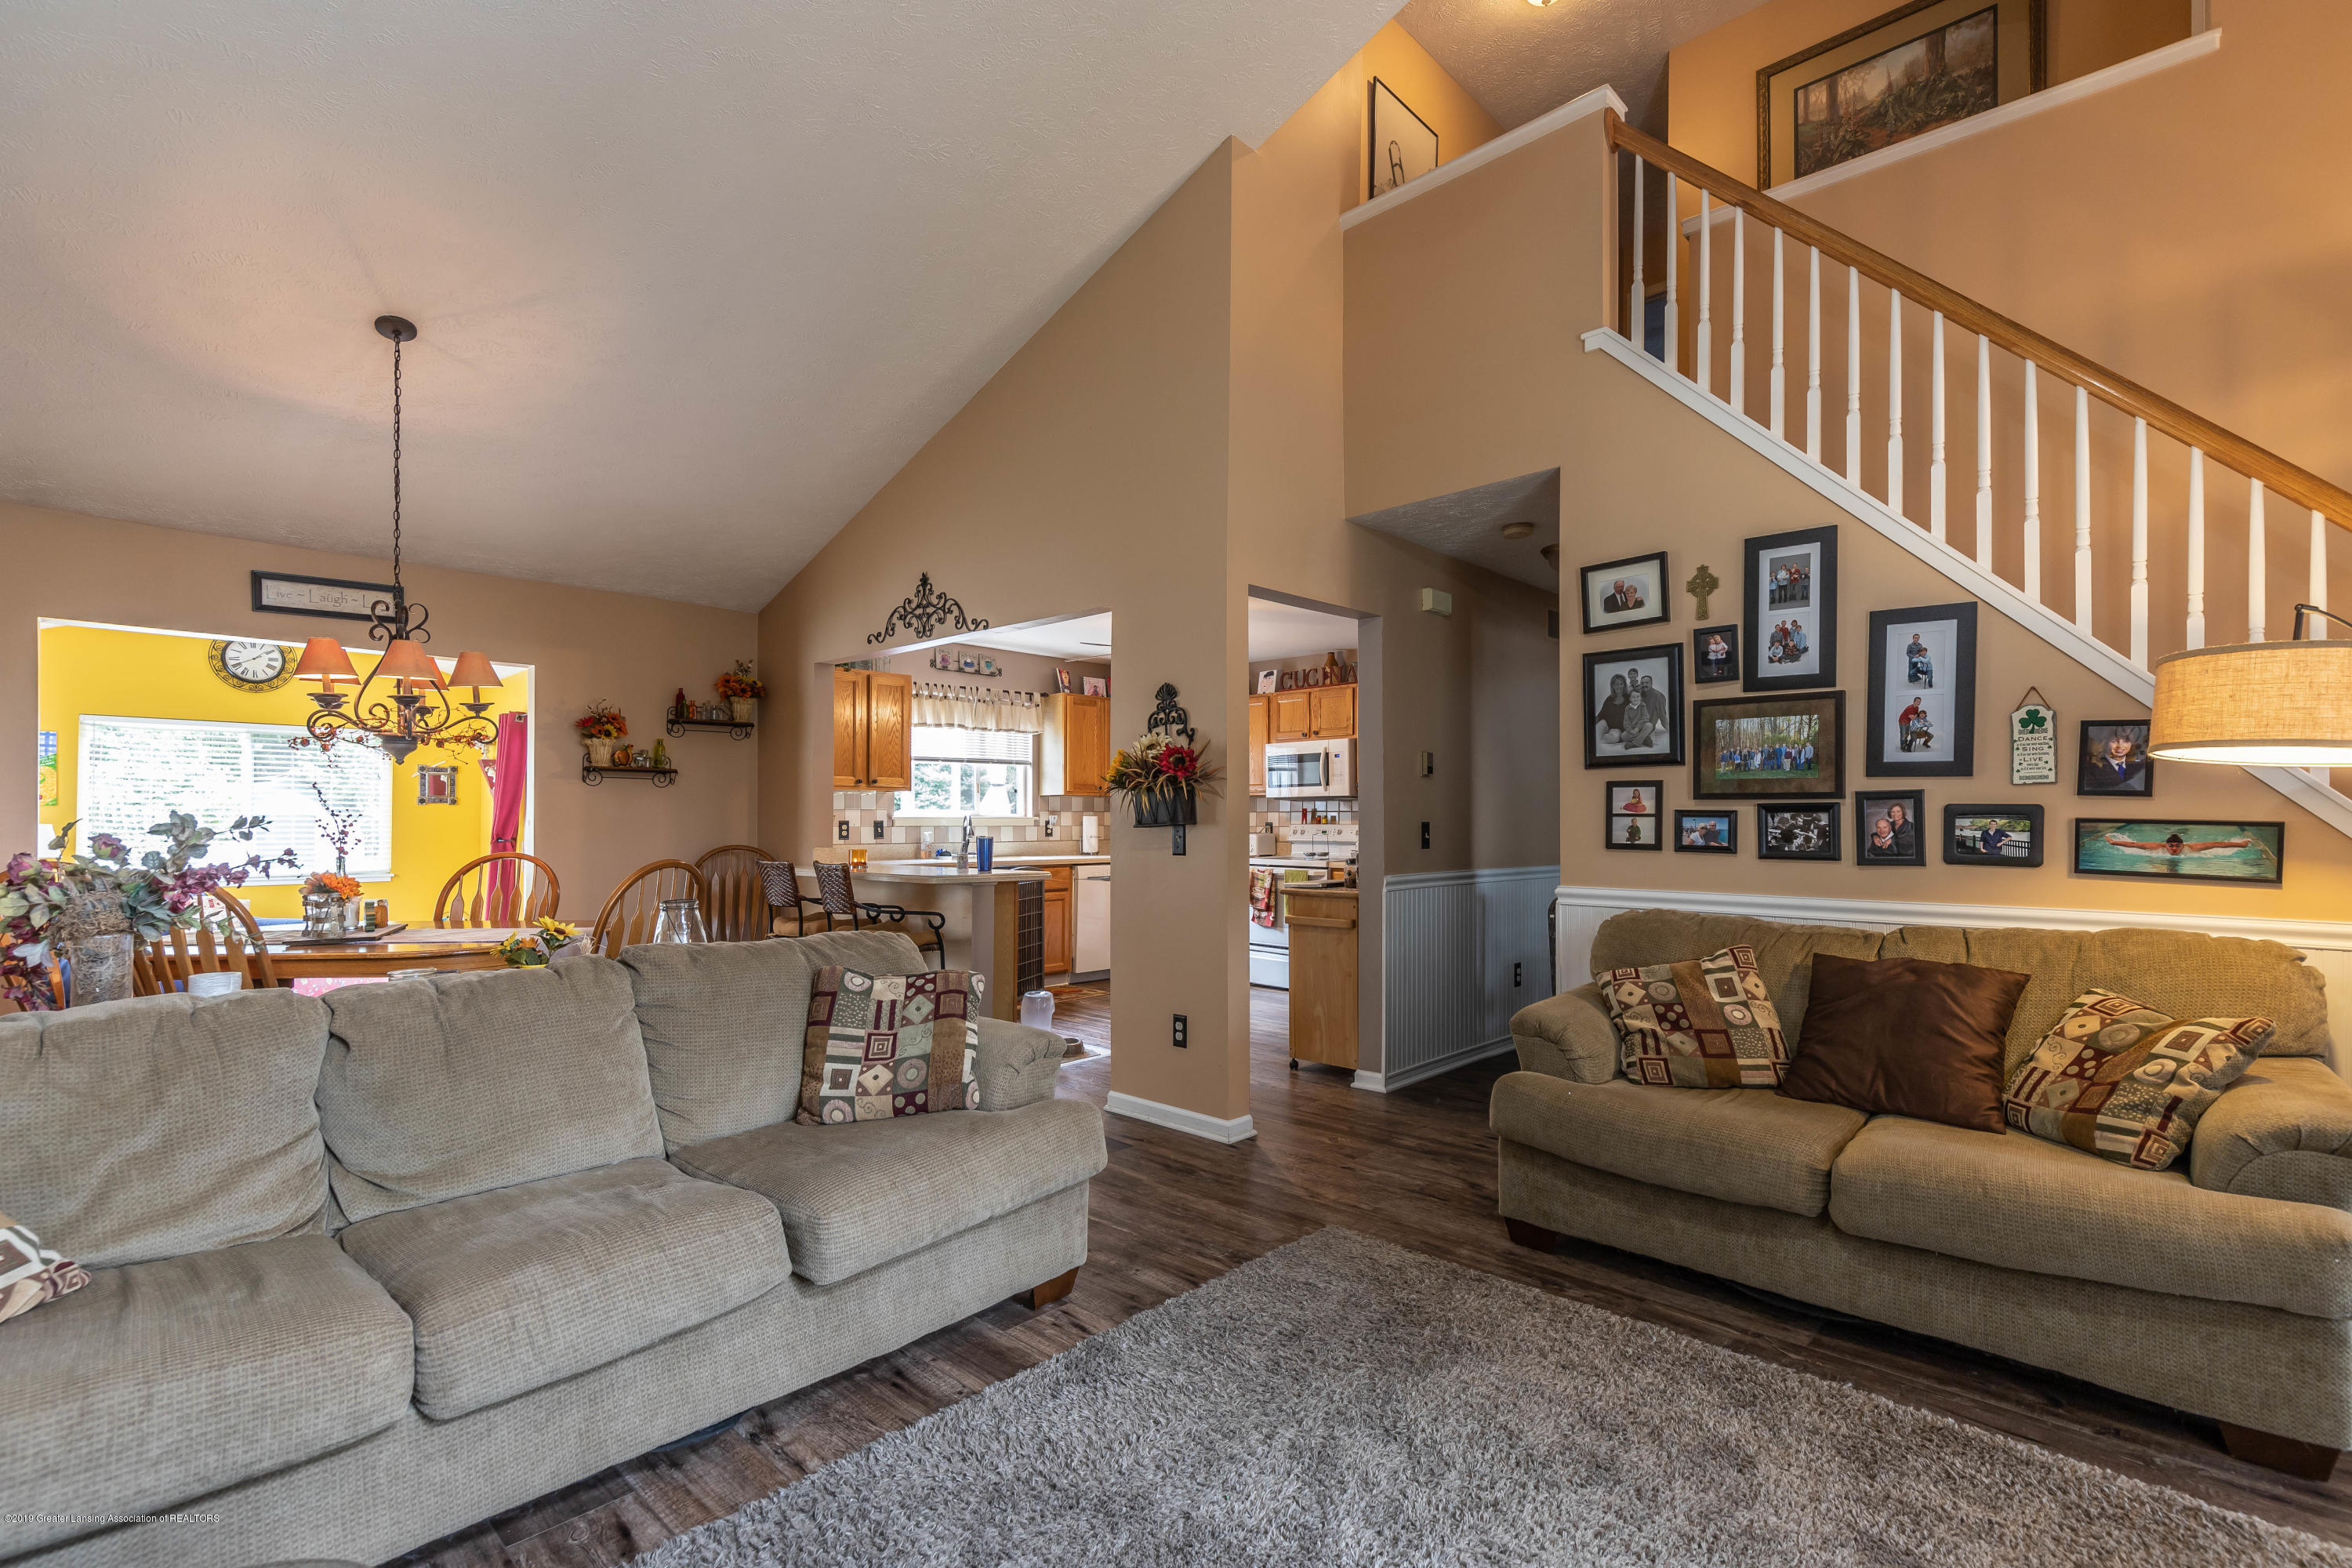 501 Winding River Dr 56 - windingliving2 (1 of 1) - 5